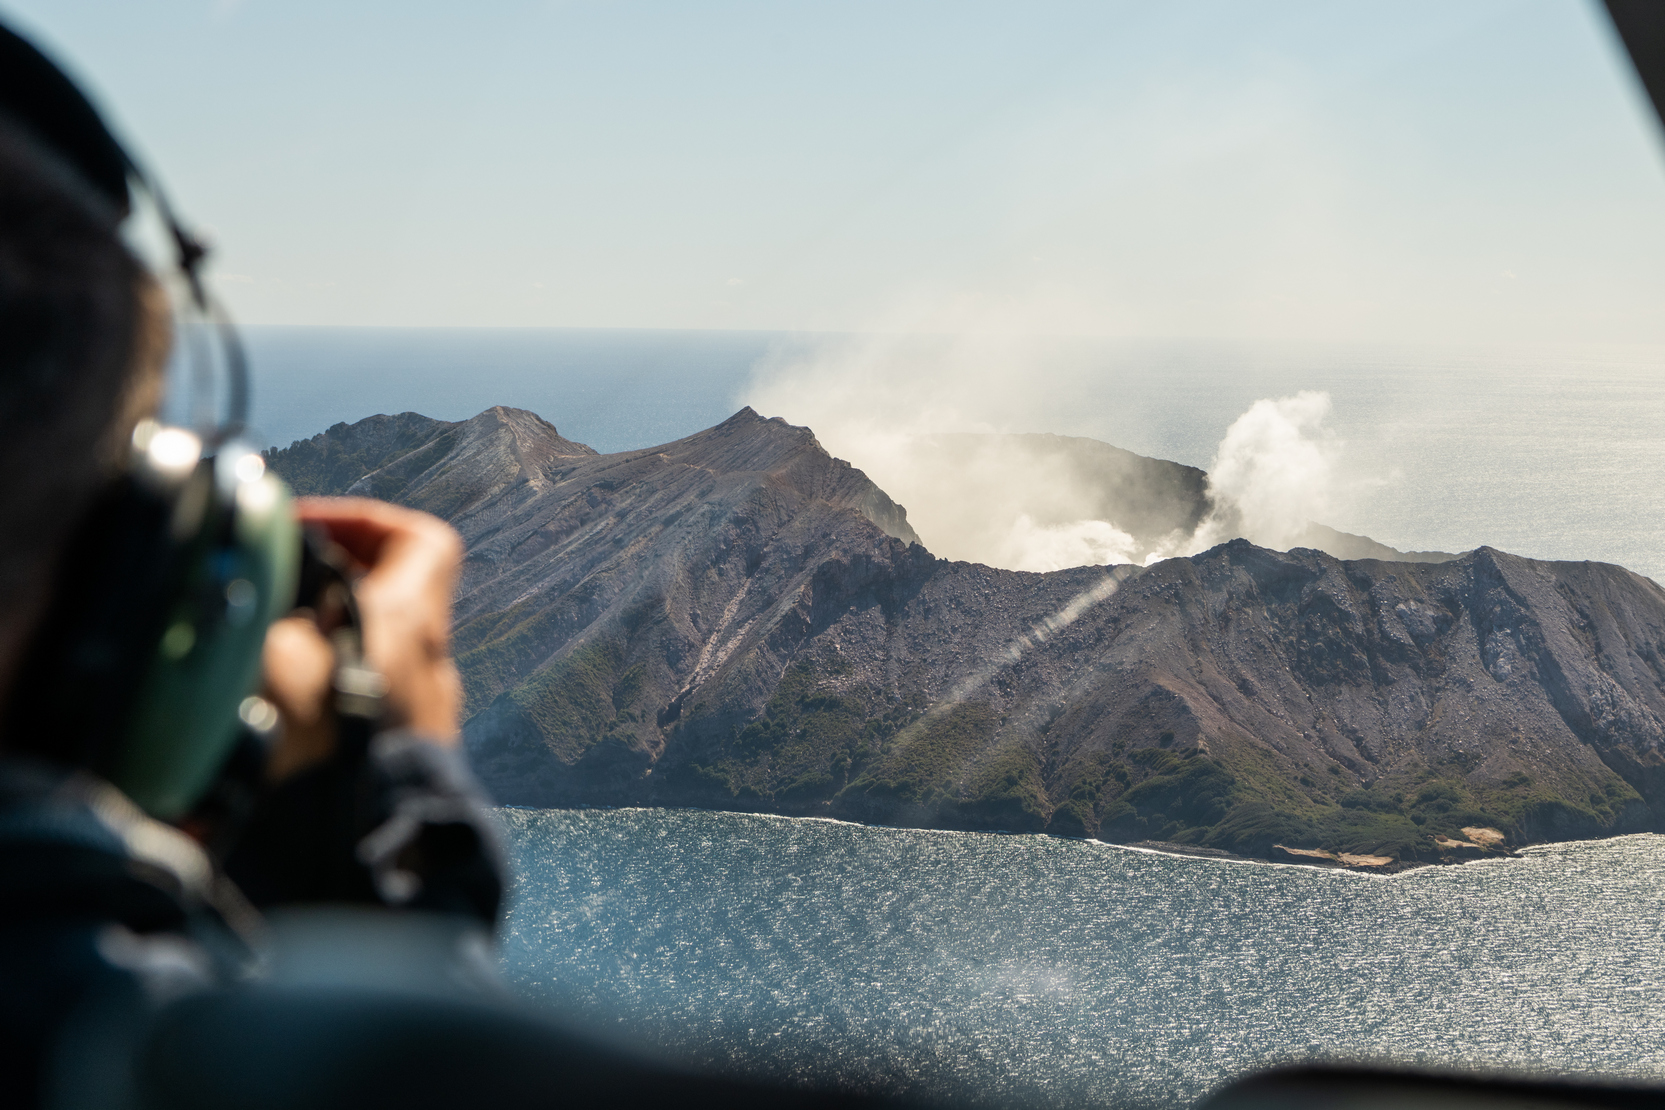 Taking Photos of White Island Volcano